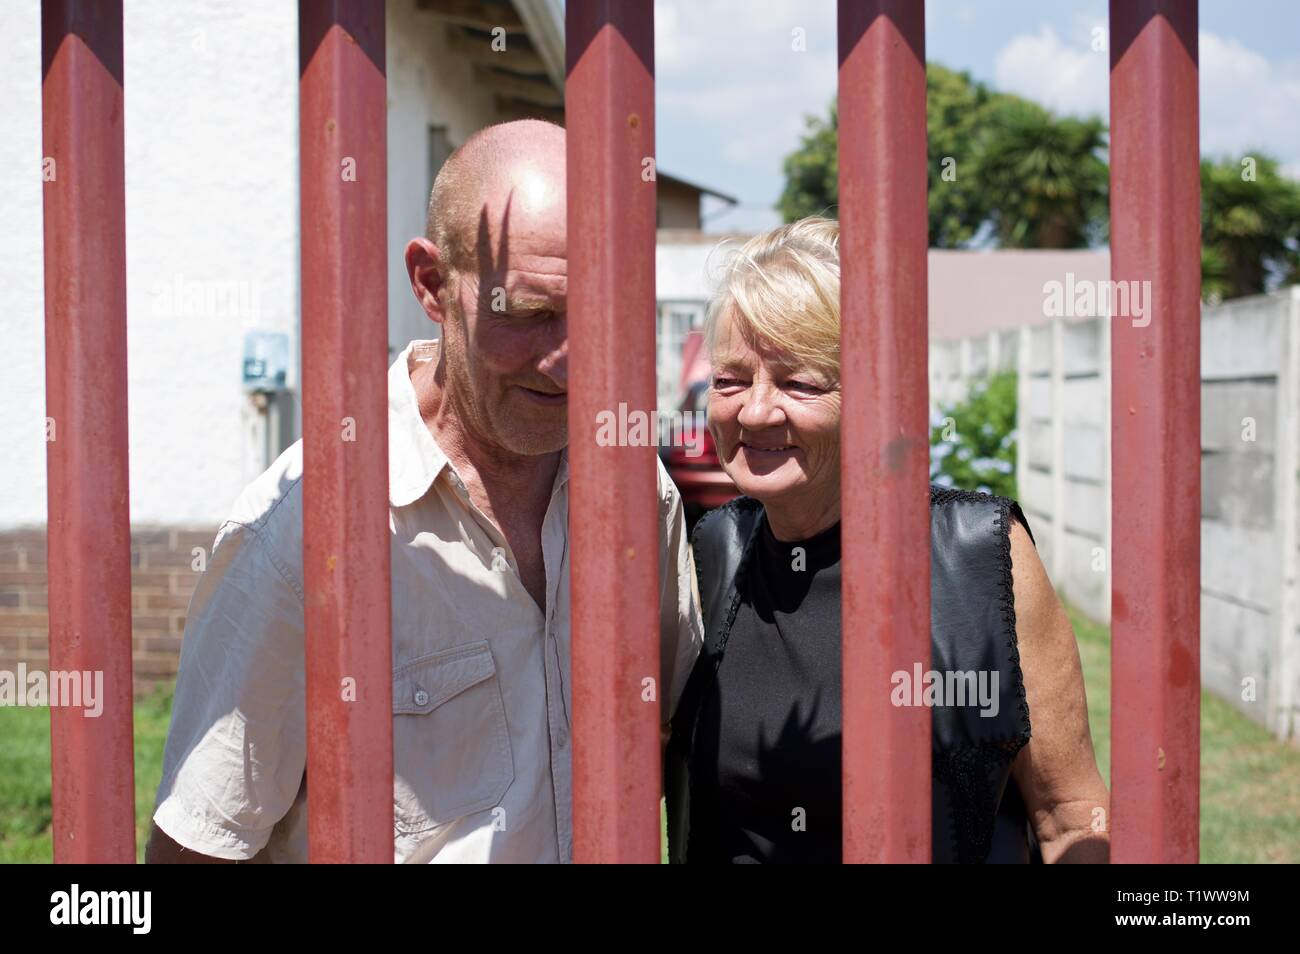 Afrikaner couple standing behind their barred security gate in Johannesburg - Stock Image